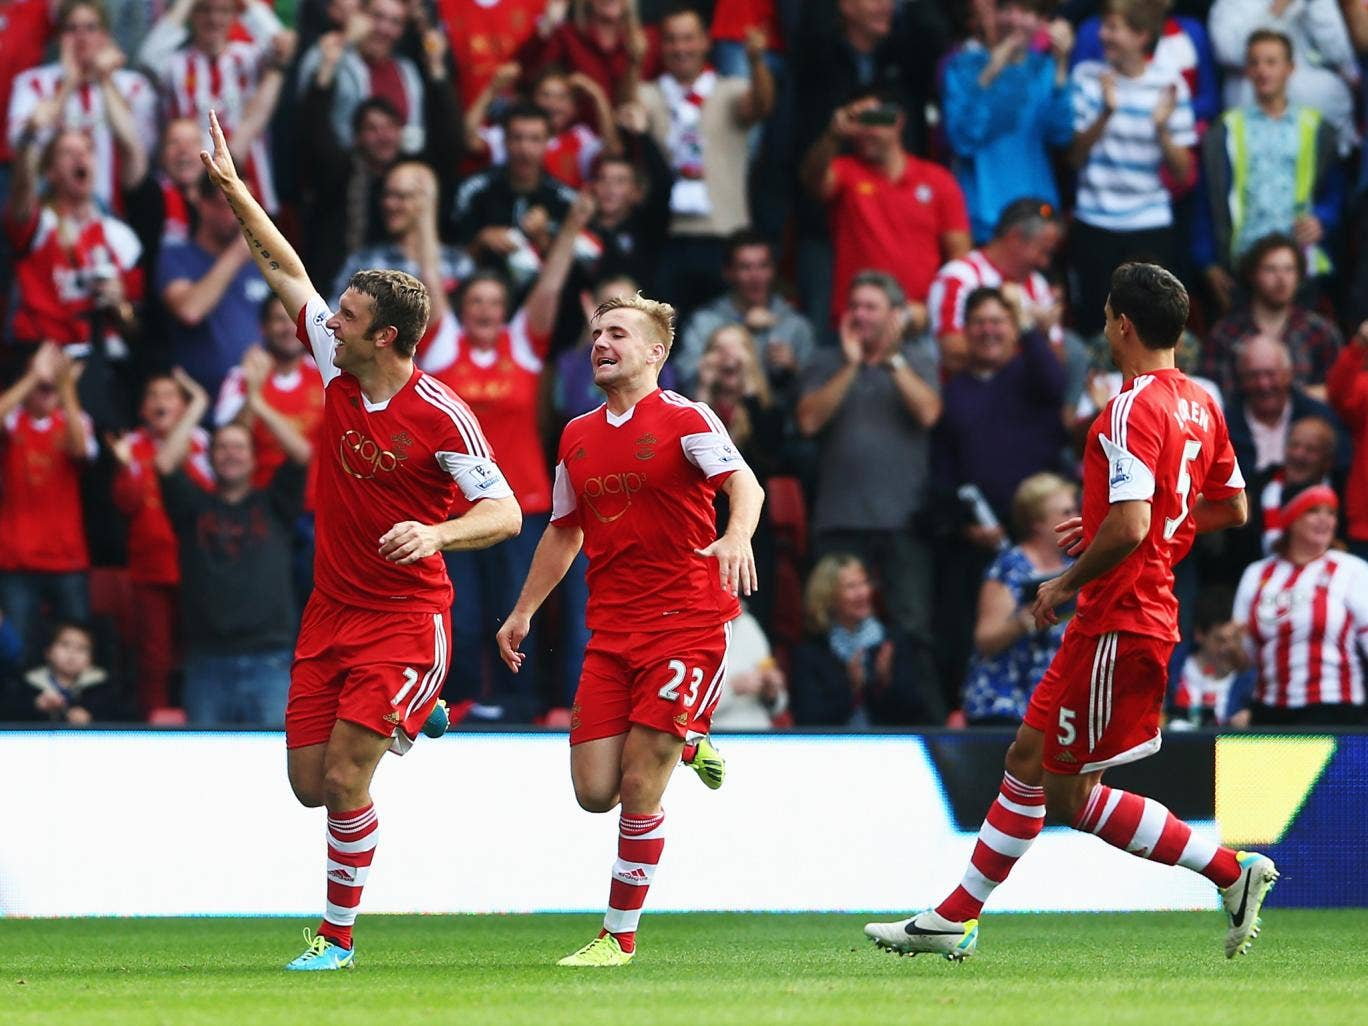 Rickie Lambert celebrates scoring Southampton's second goal against Crystal Palace